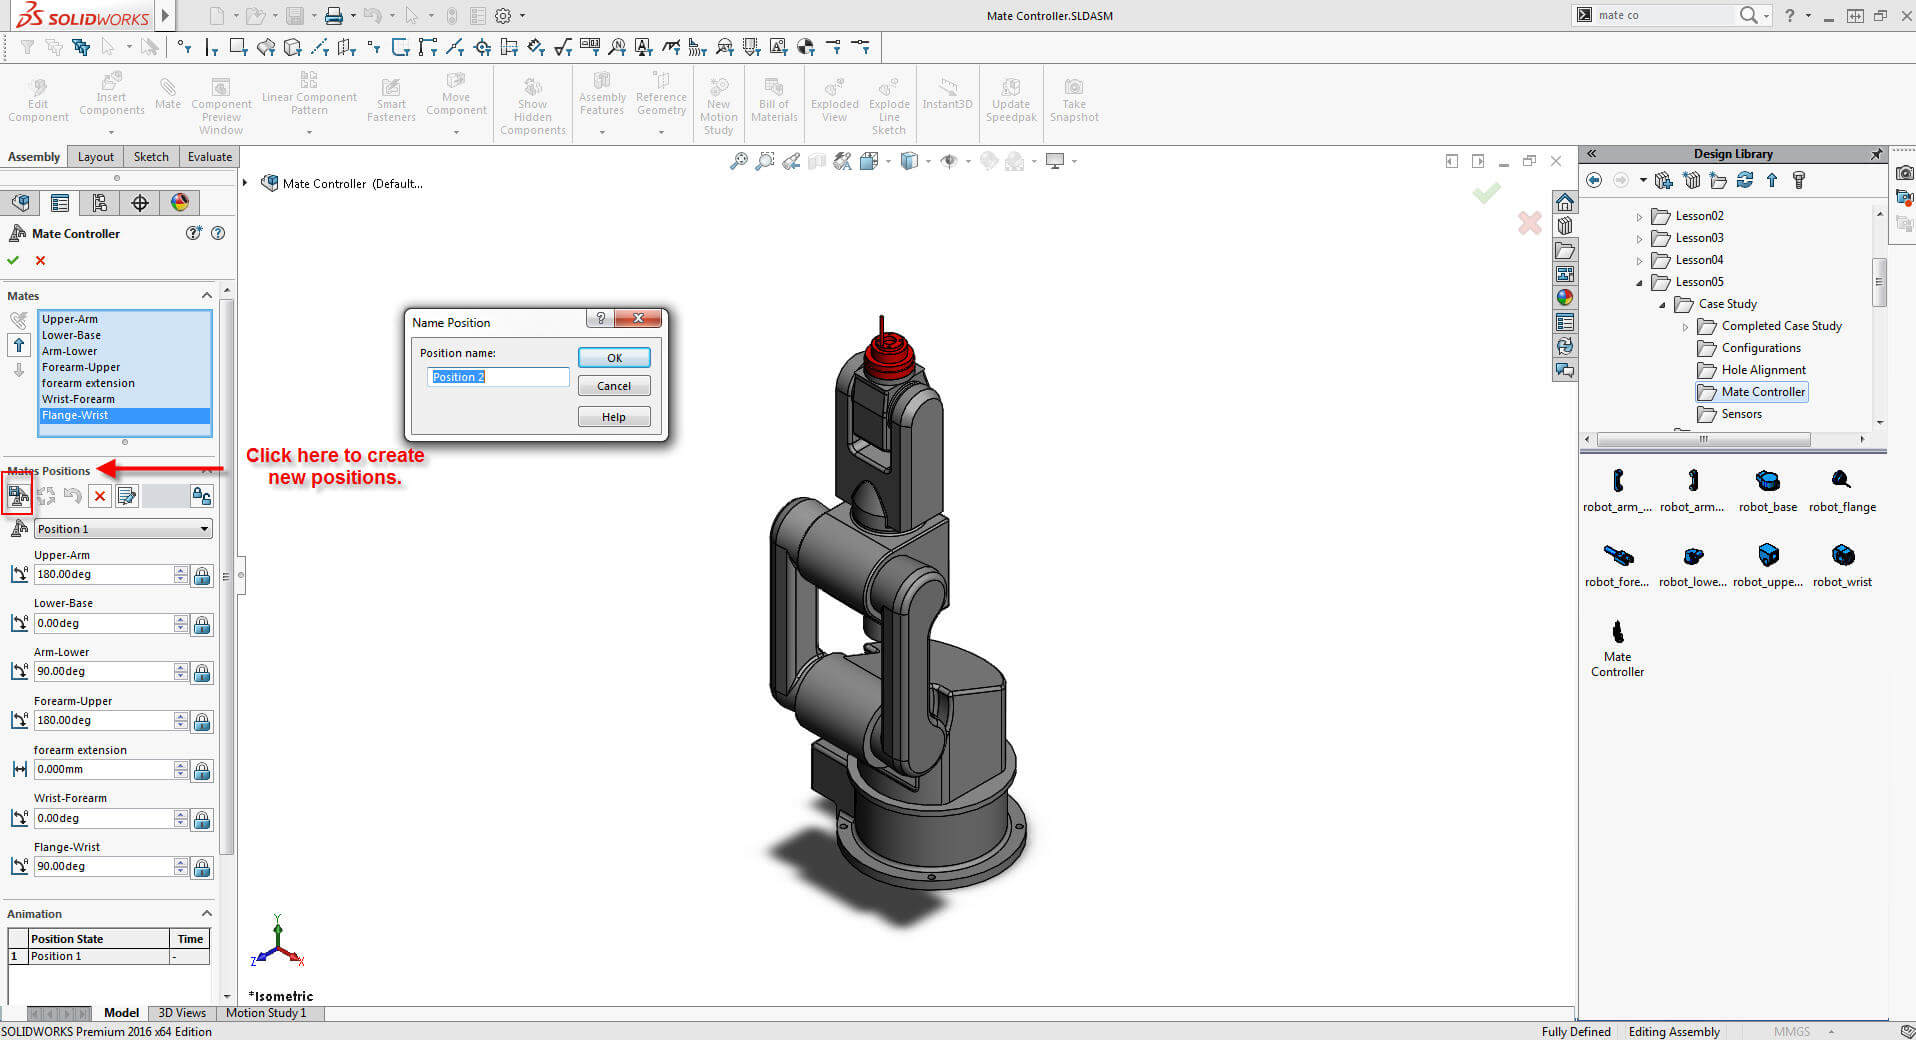 SOLIDWORKS Mate Controller